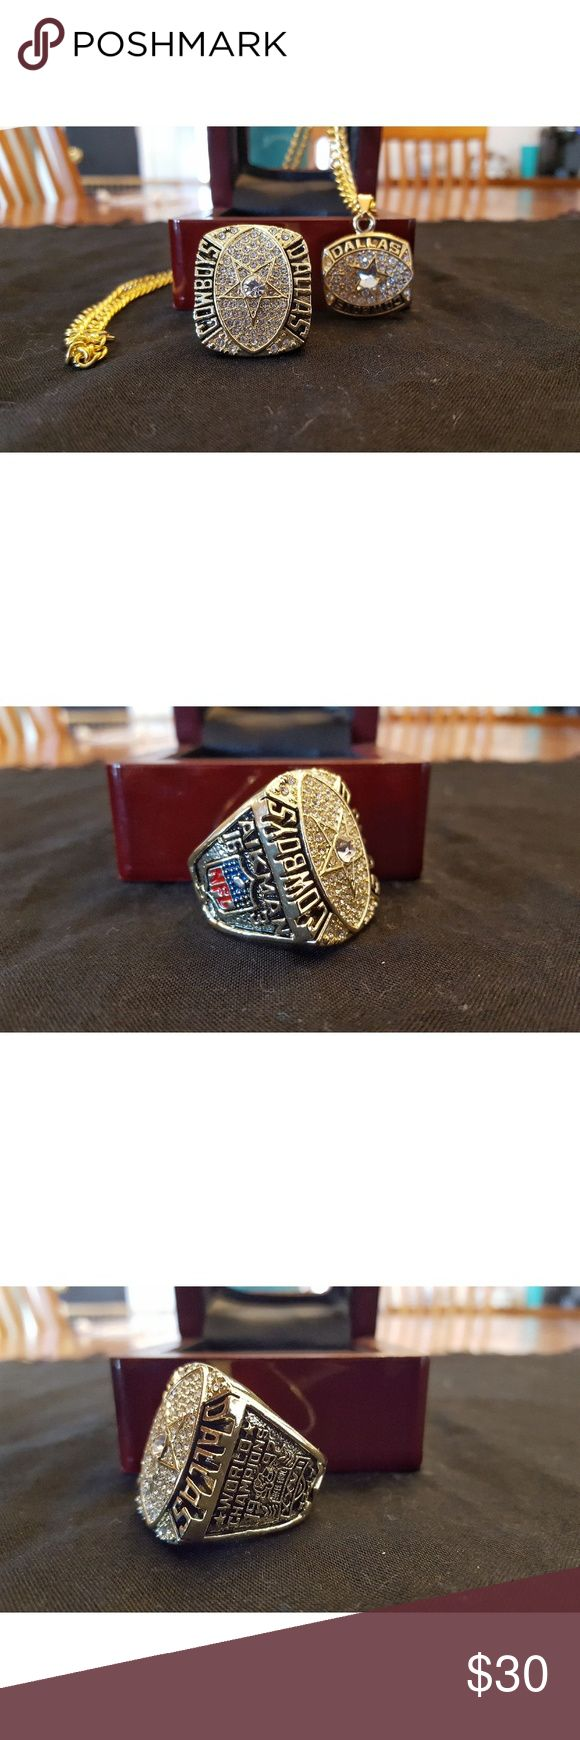 Dalkas Cowboys Fan Edition 1992 Super Bowl Ring 🏆🏈🏆 New never worn. Many sizes. Ring and/or necklace. Show the world your Cowboys pride by owning this beautiful ring and remember their 1992 Super Bowl Championship Ring . This gorgeous ring is 18k gold plated and inlayed with exquisite cubic zirconias. It will look great on your finger, at the game, while watching the game on tv, or around town. This is the closest thing to a real championship ring set that most of us will ever get…